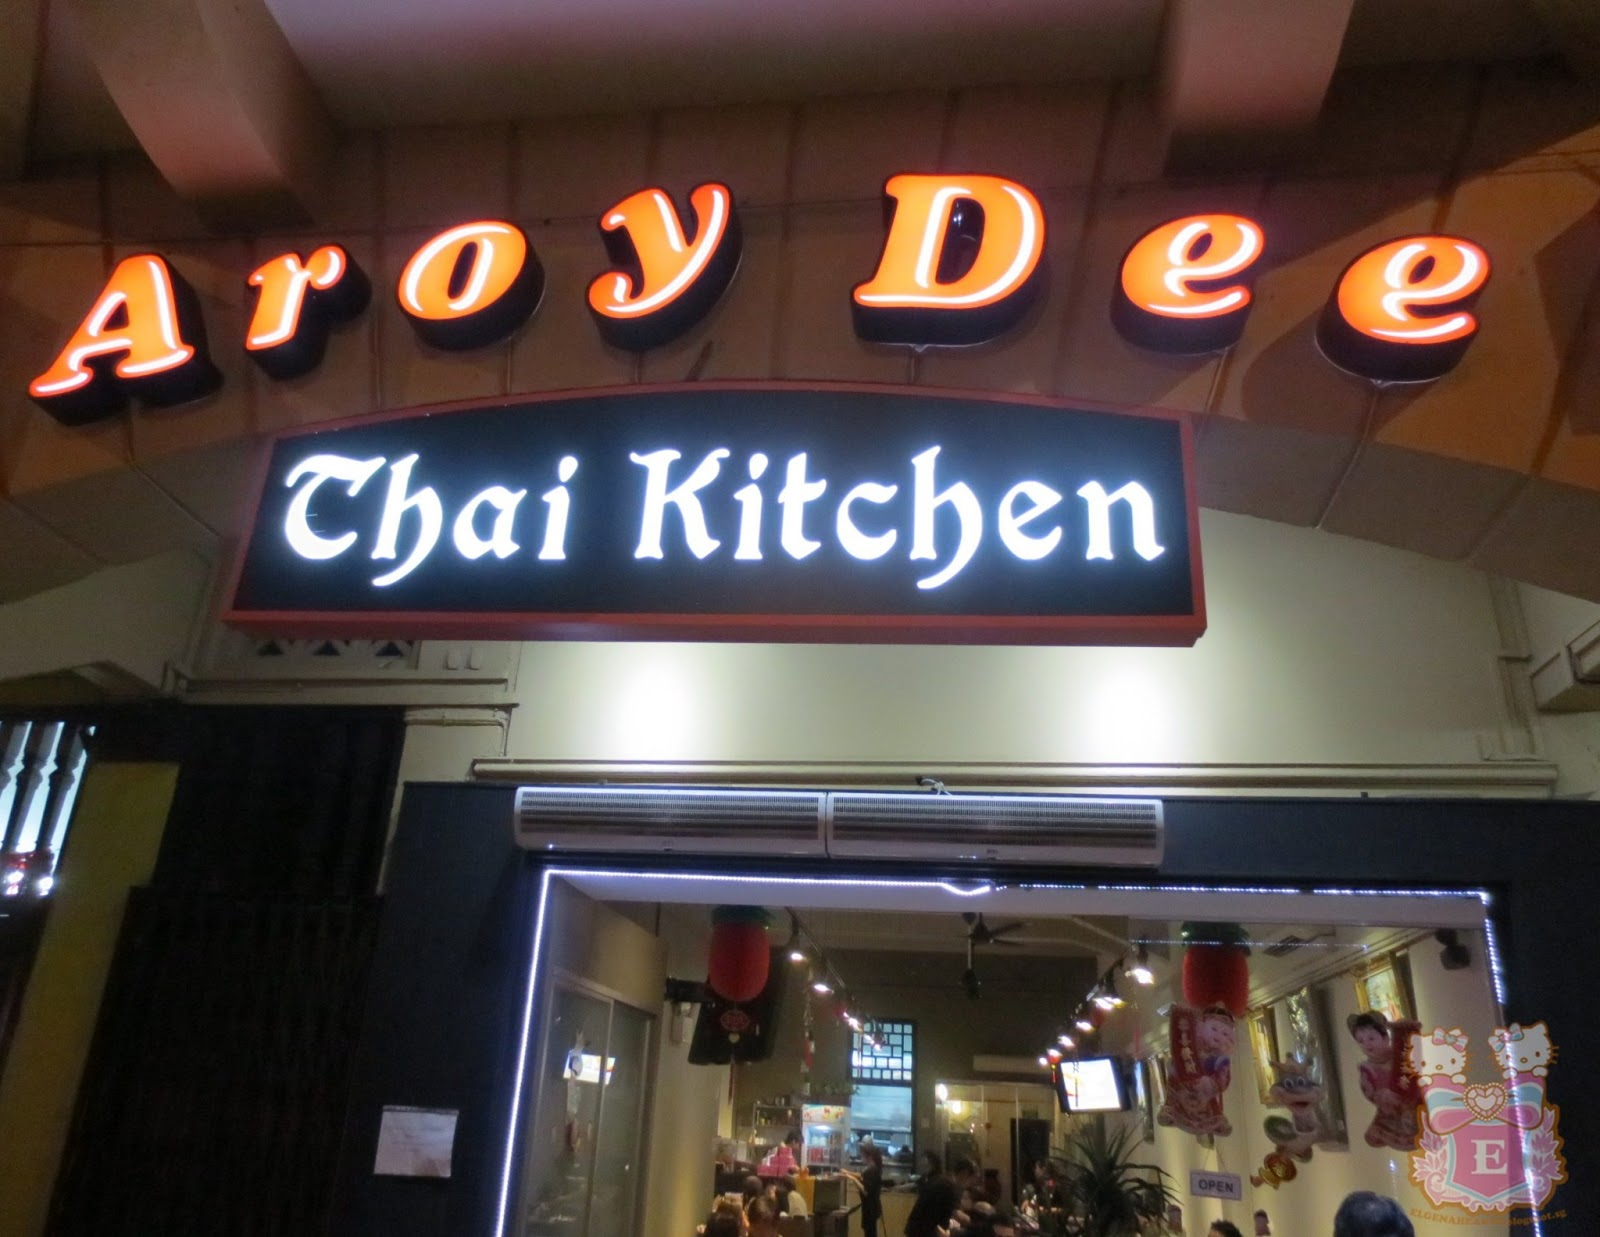 authentic thai food at aroy dee elgenahearts